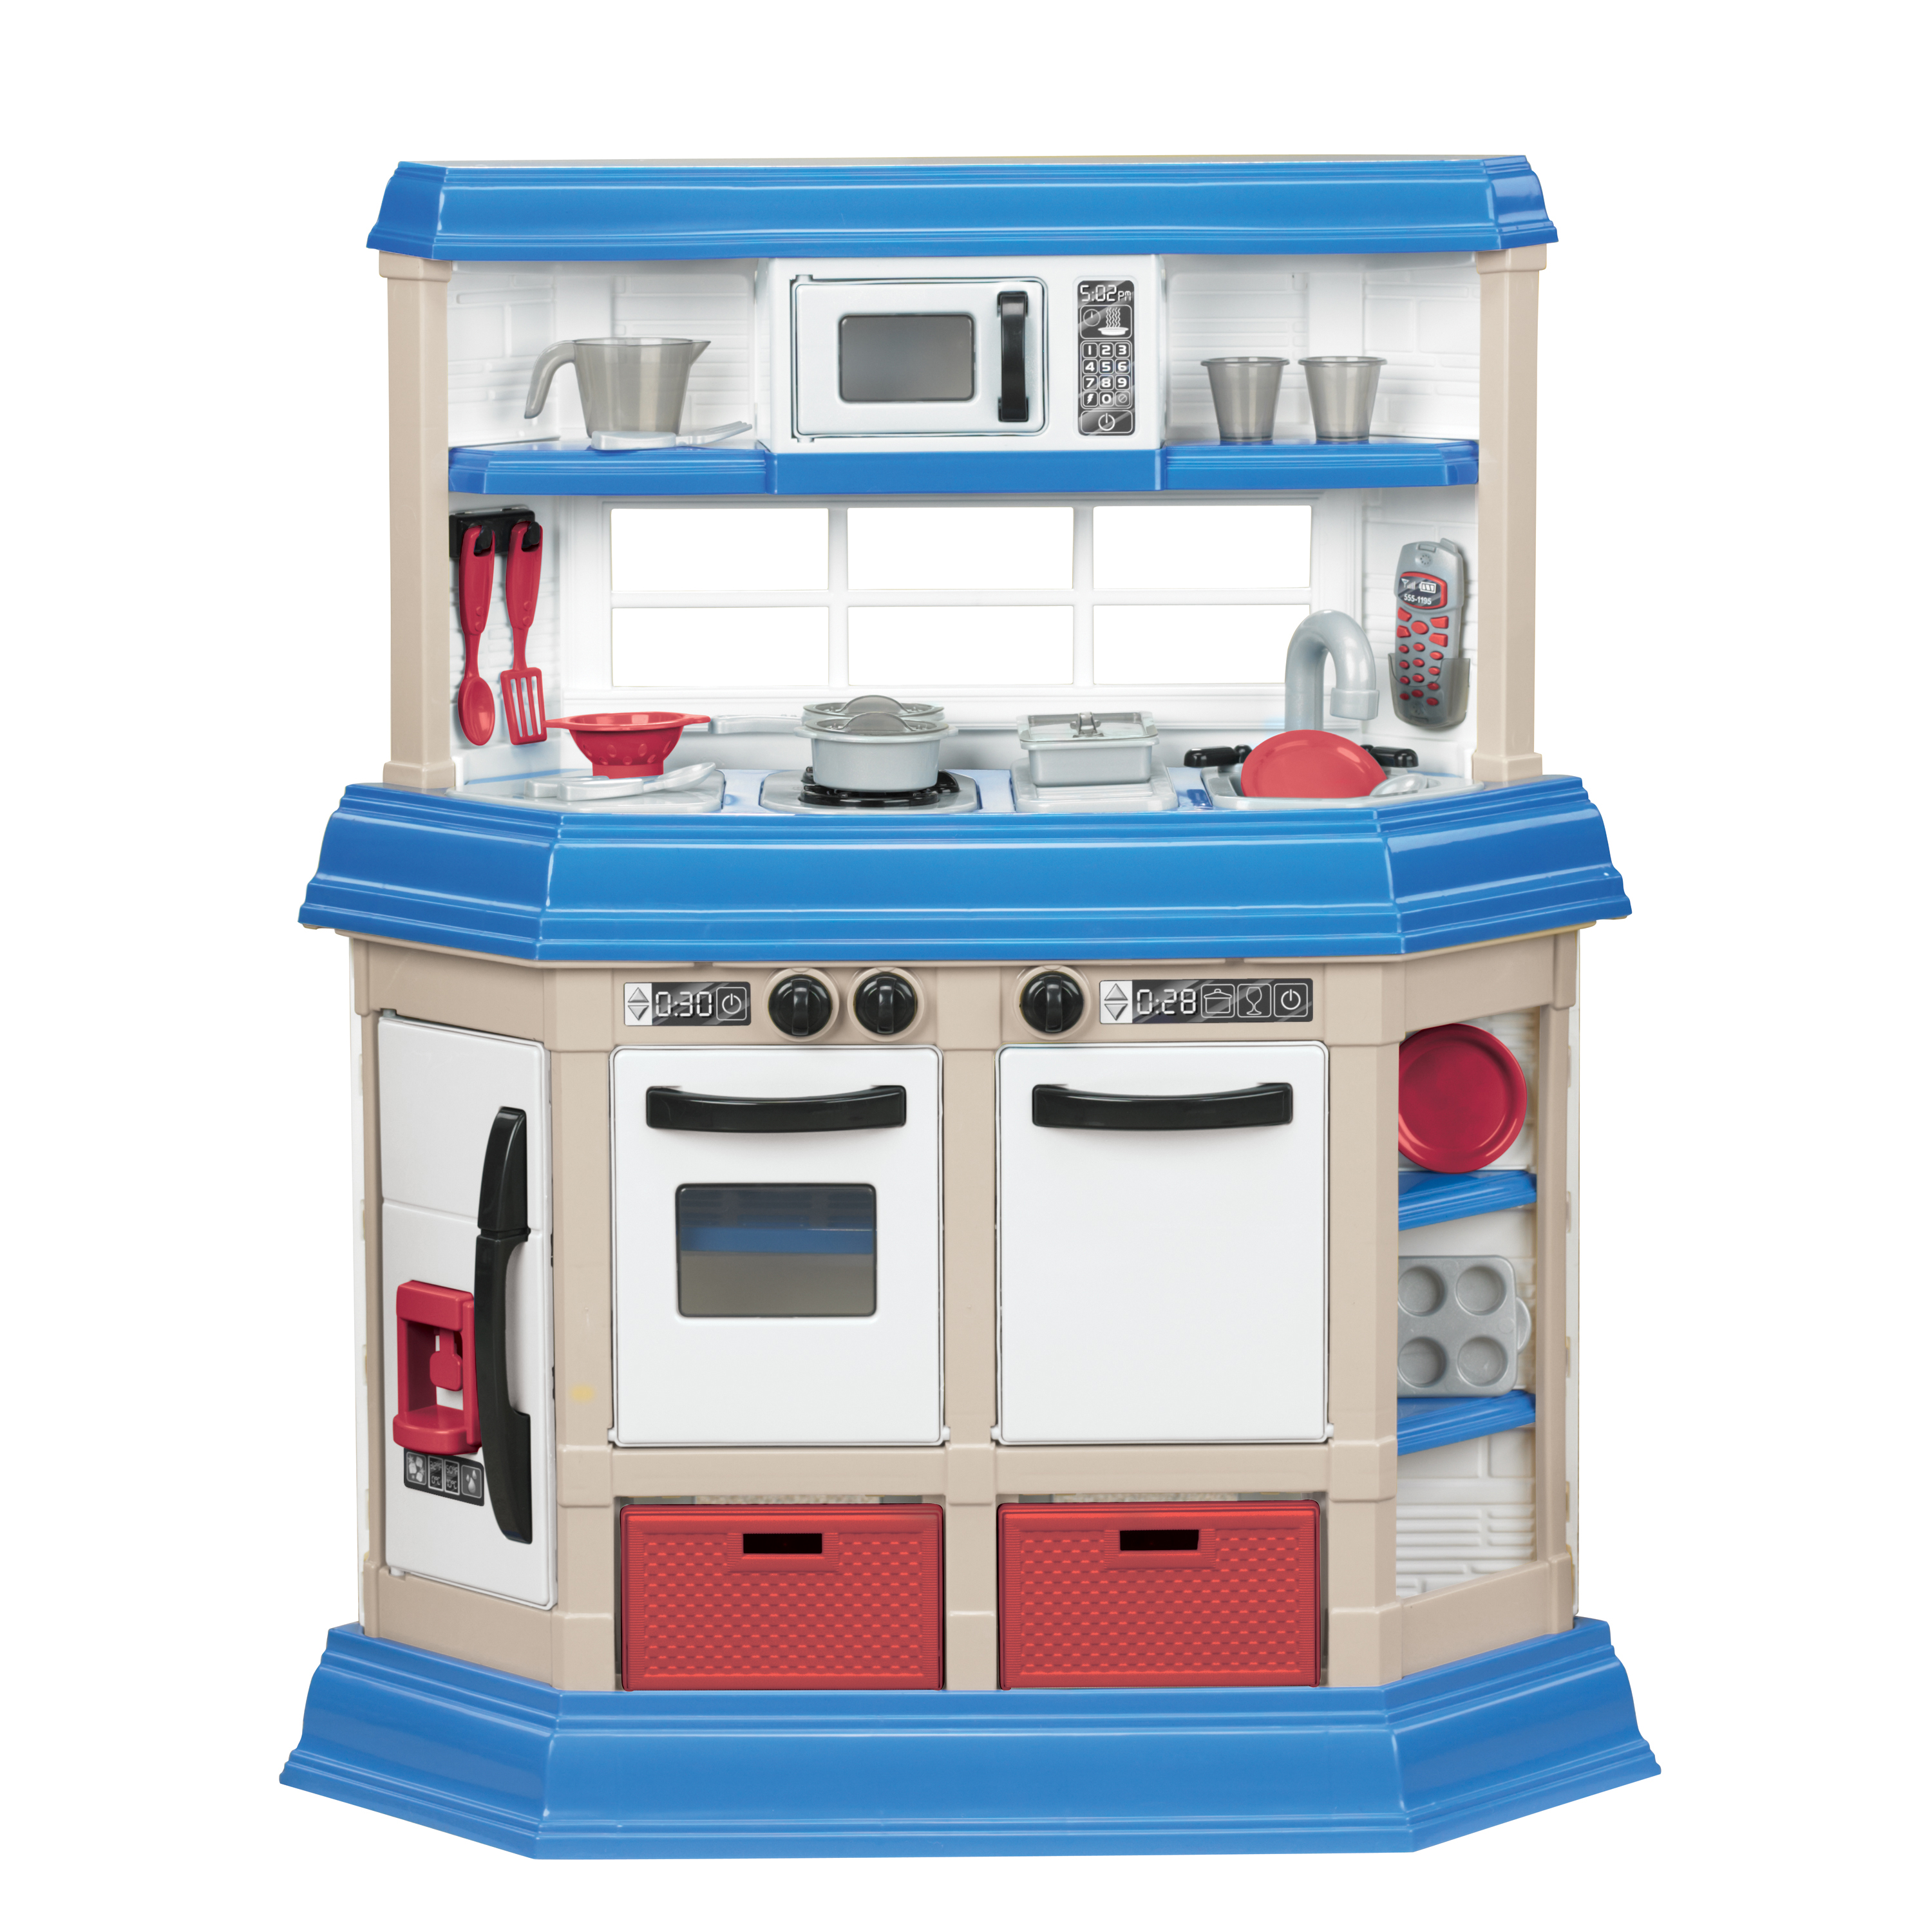 kids play kitchen sets utensil organizer american plastic toys cookin with 22 accessories walmart com